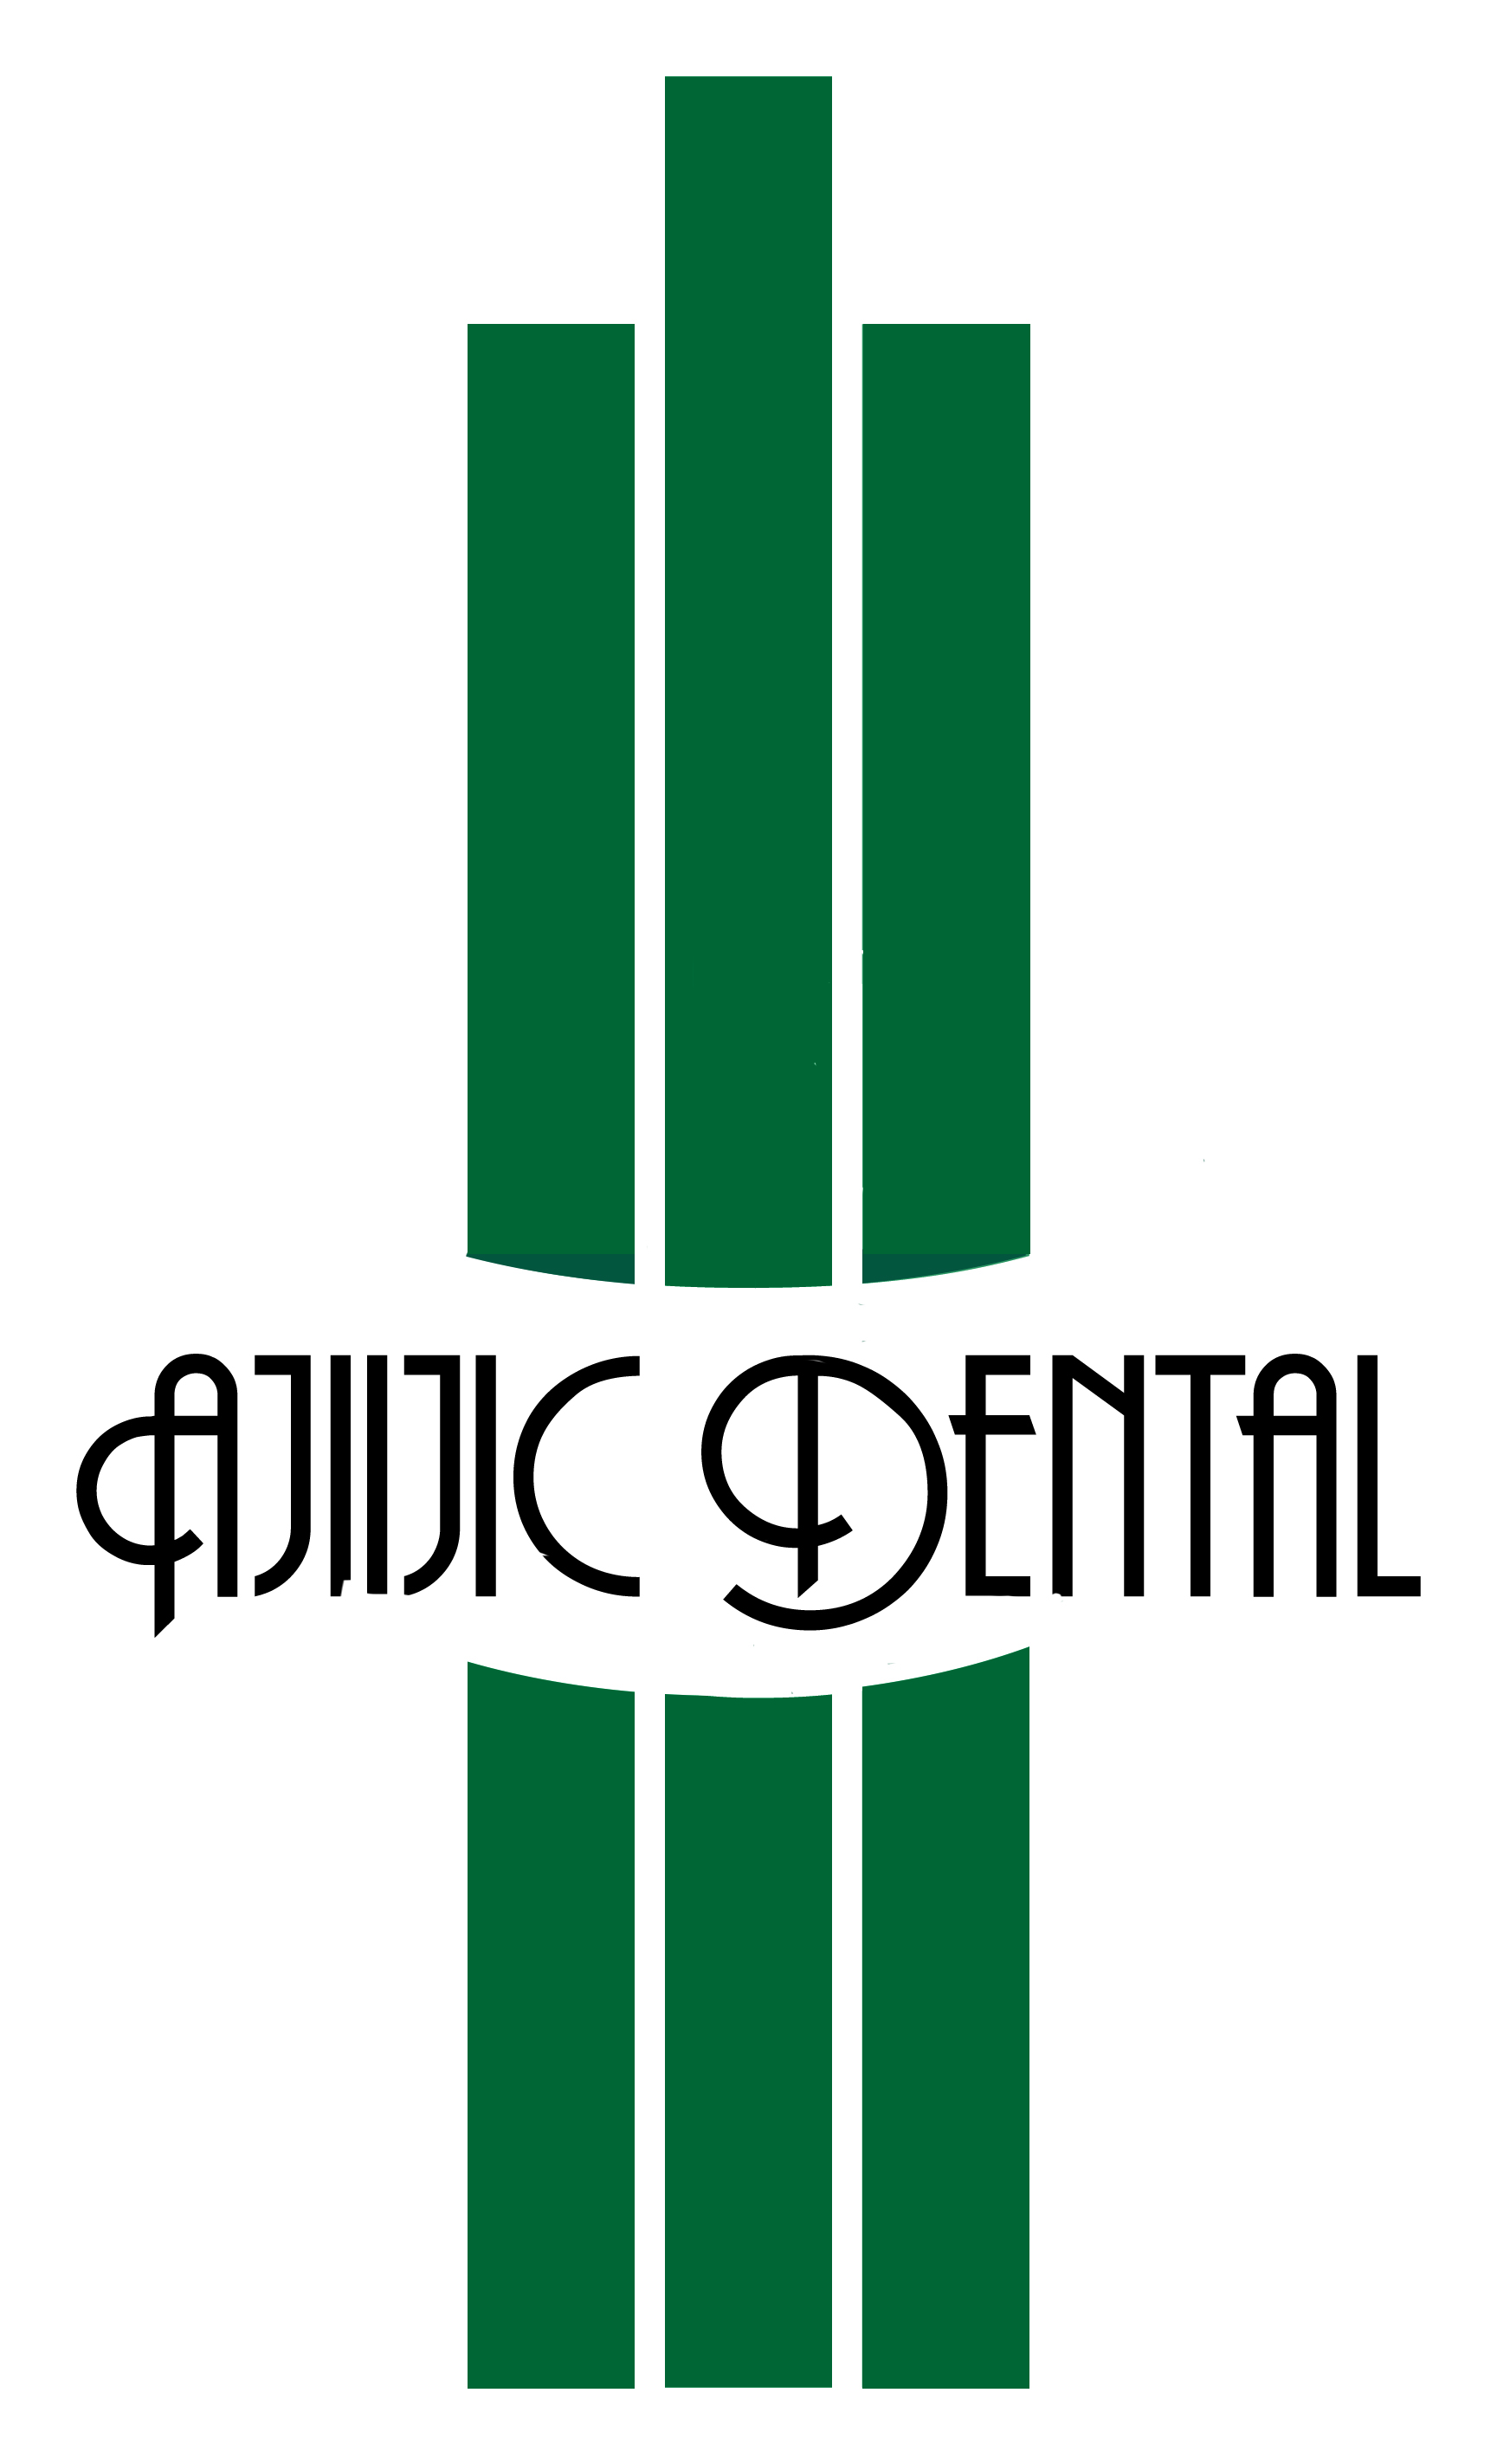 Ajijic Dental Clinic